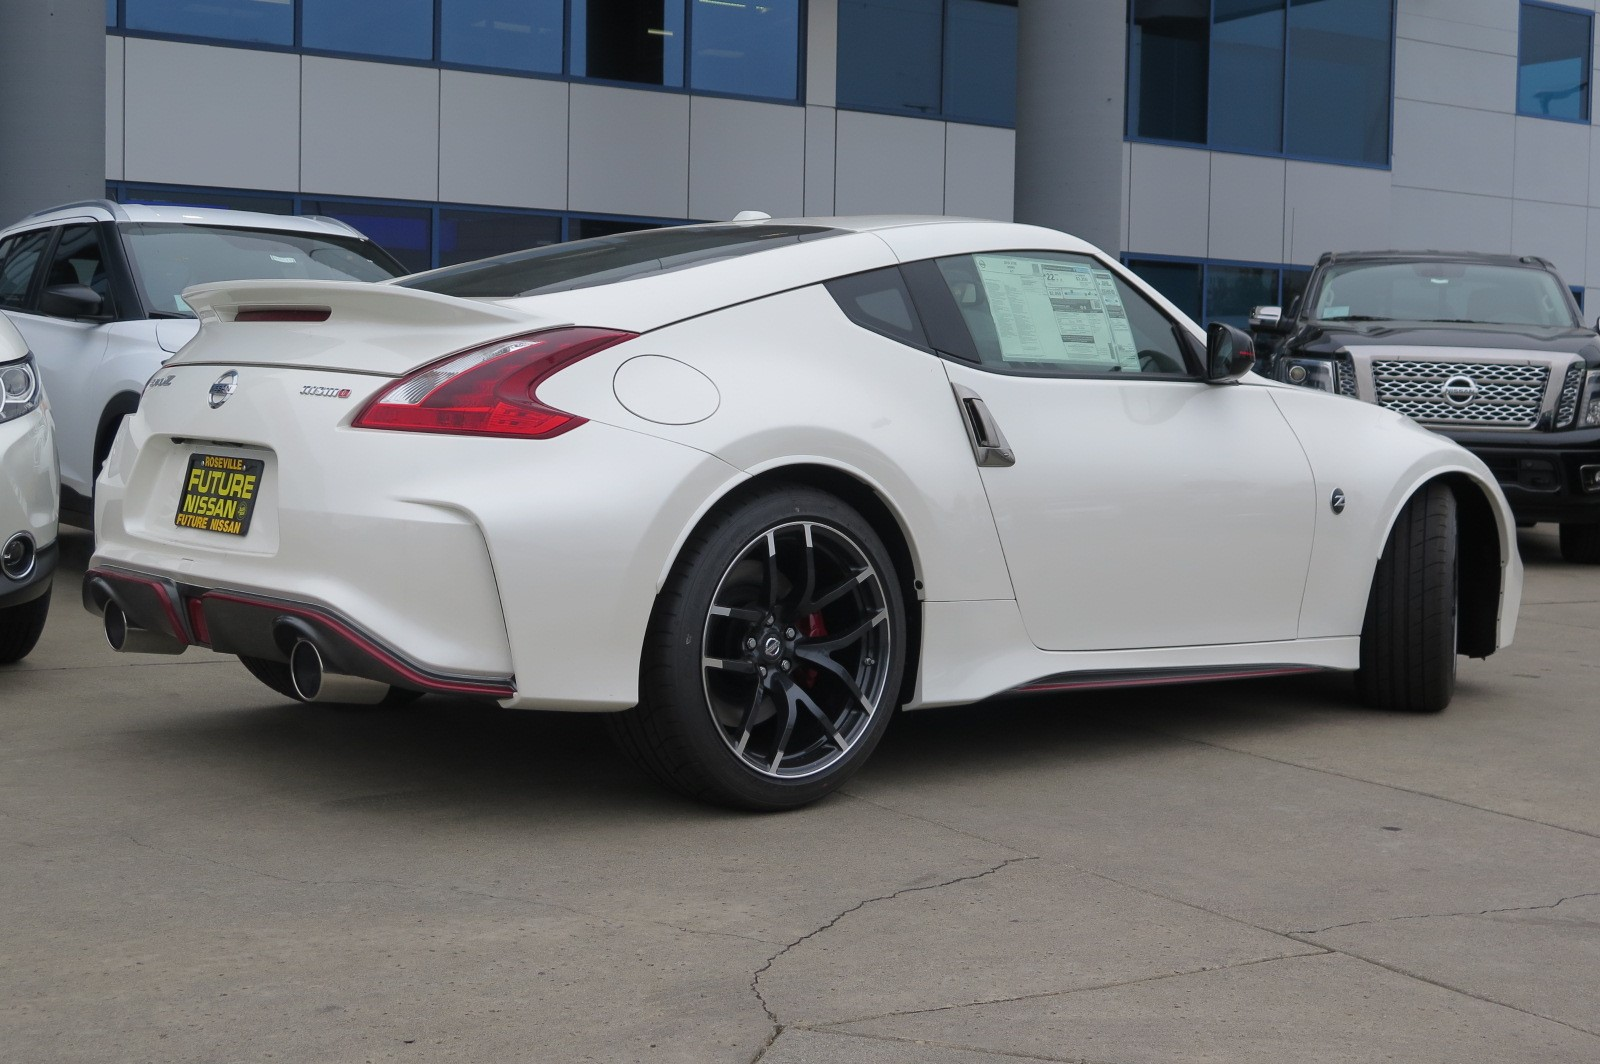 New 2019 Nissan 370z Coupe Nismo 2dr Car In Roseville N47112 79 Trans Am Alternator Wiring Diagram